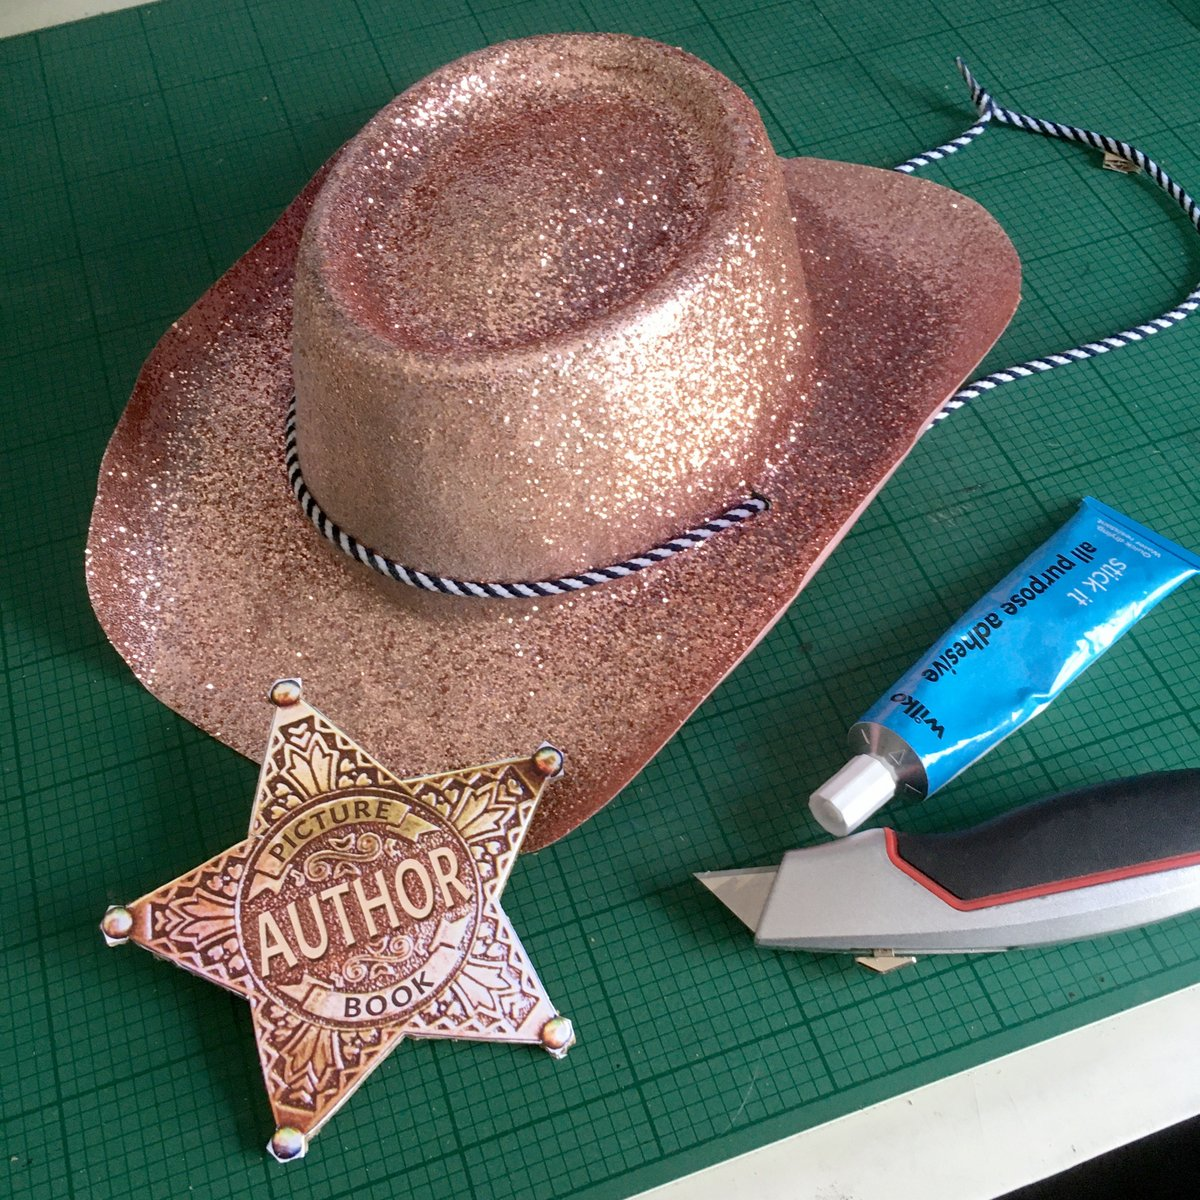 Doing a bit of prop making for a picture book sing-along I'm hoping to record this afternoon. @DebbieAllwright